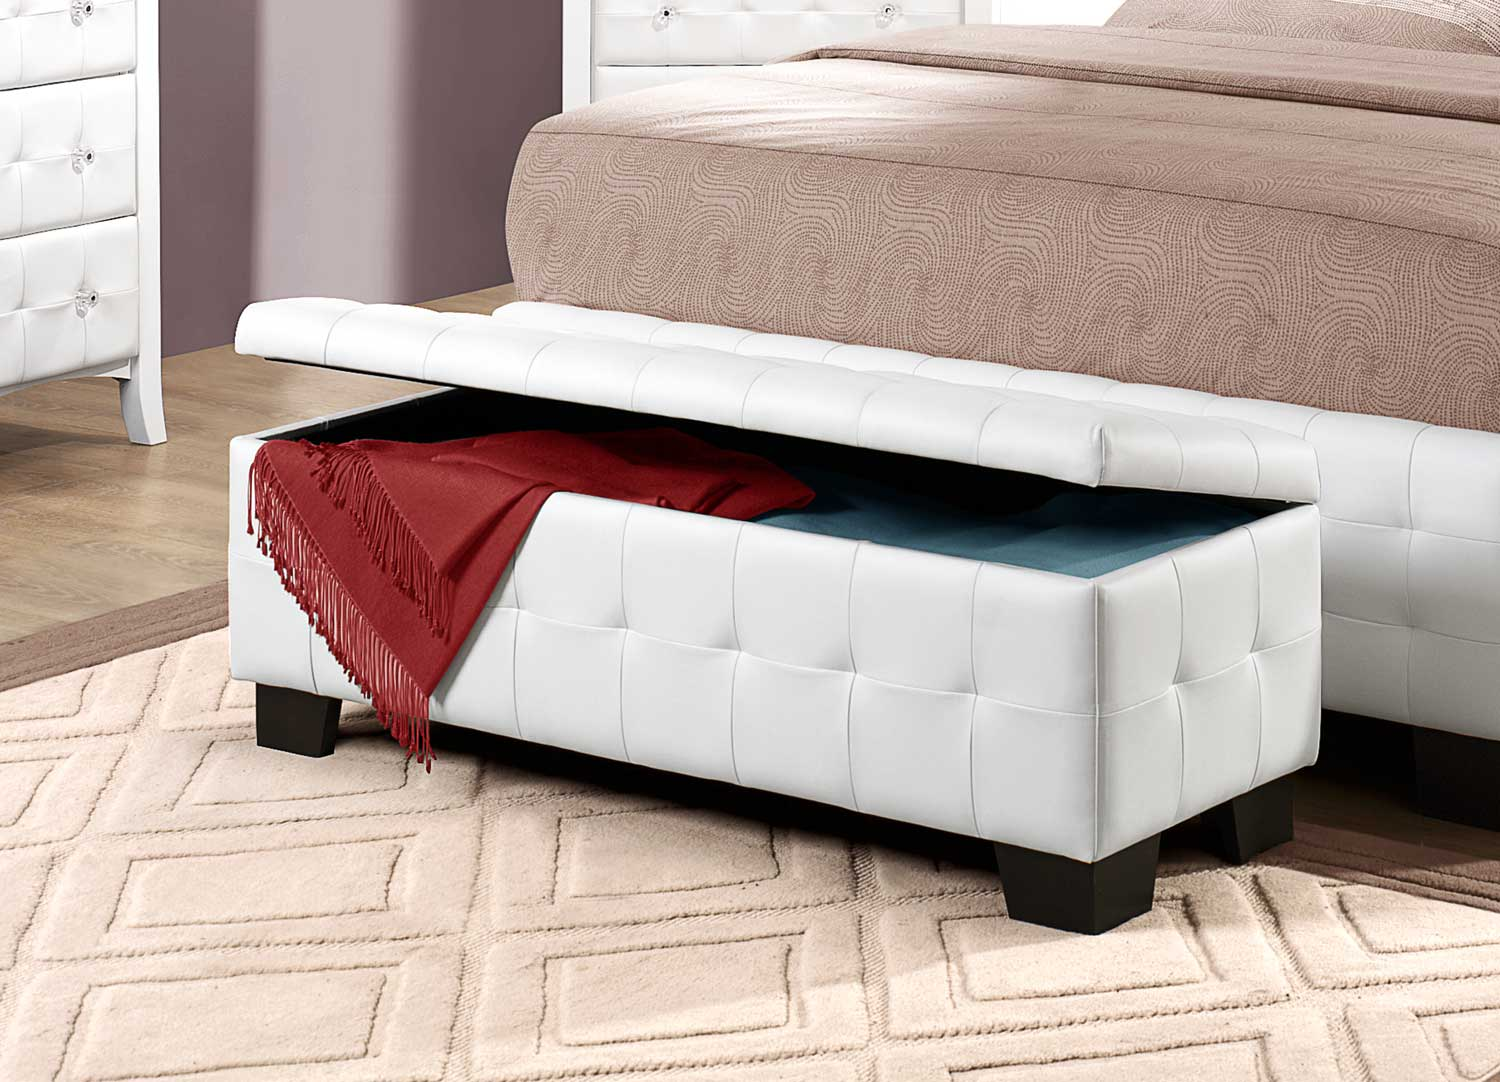 Homelegance Sparkle Upholstered Storage Bench - White & Homelegance Sparkle Upholstered Storage Bench - White 2004-13 ...